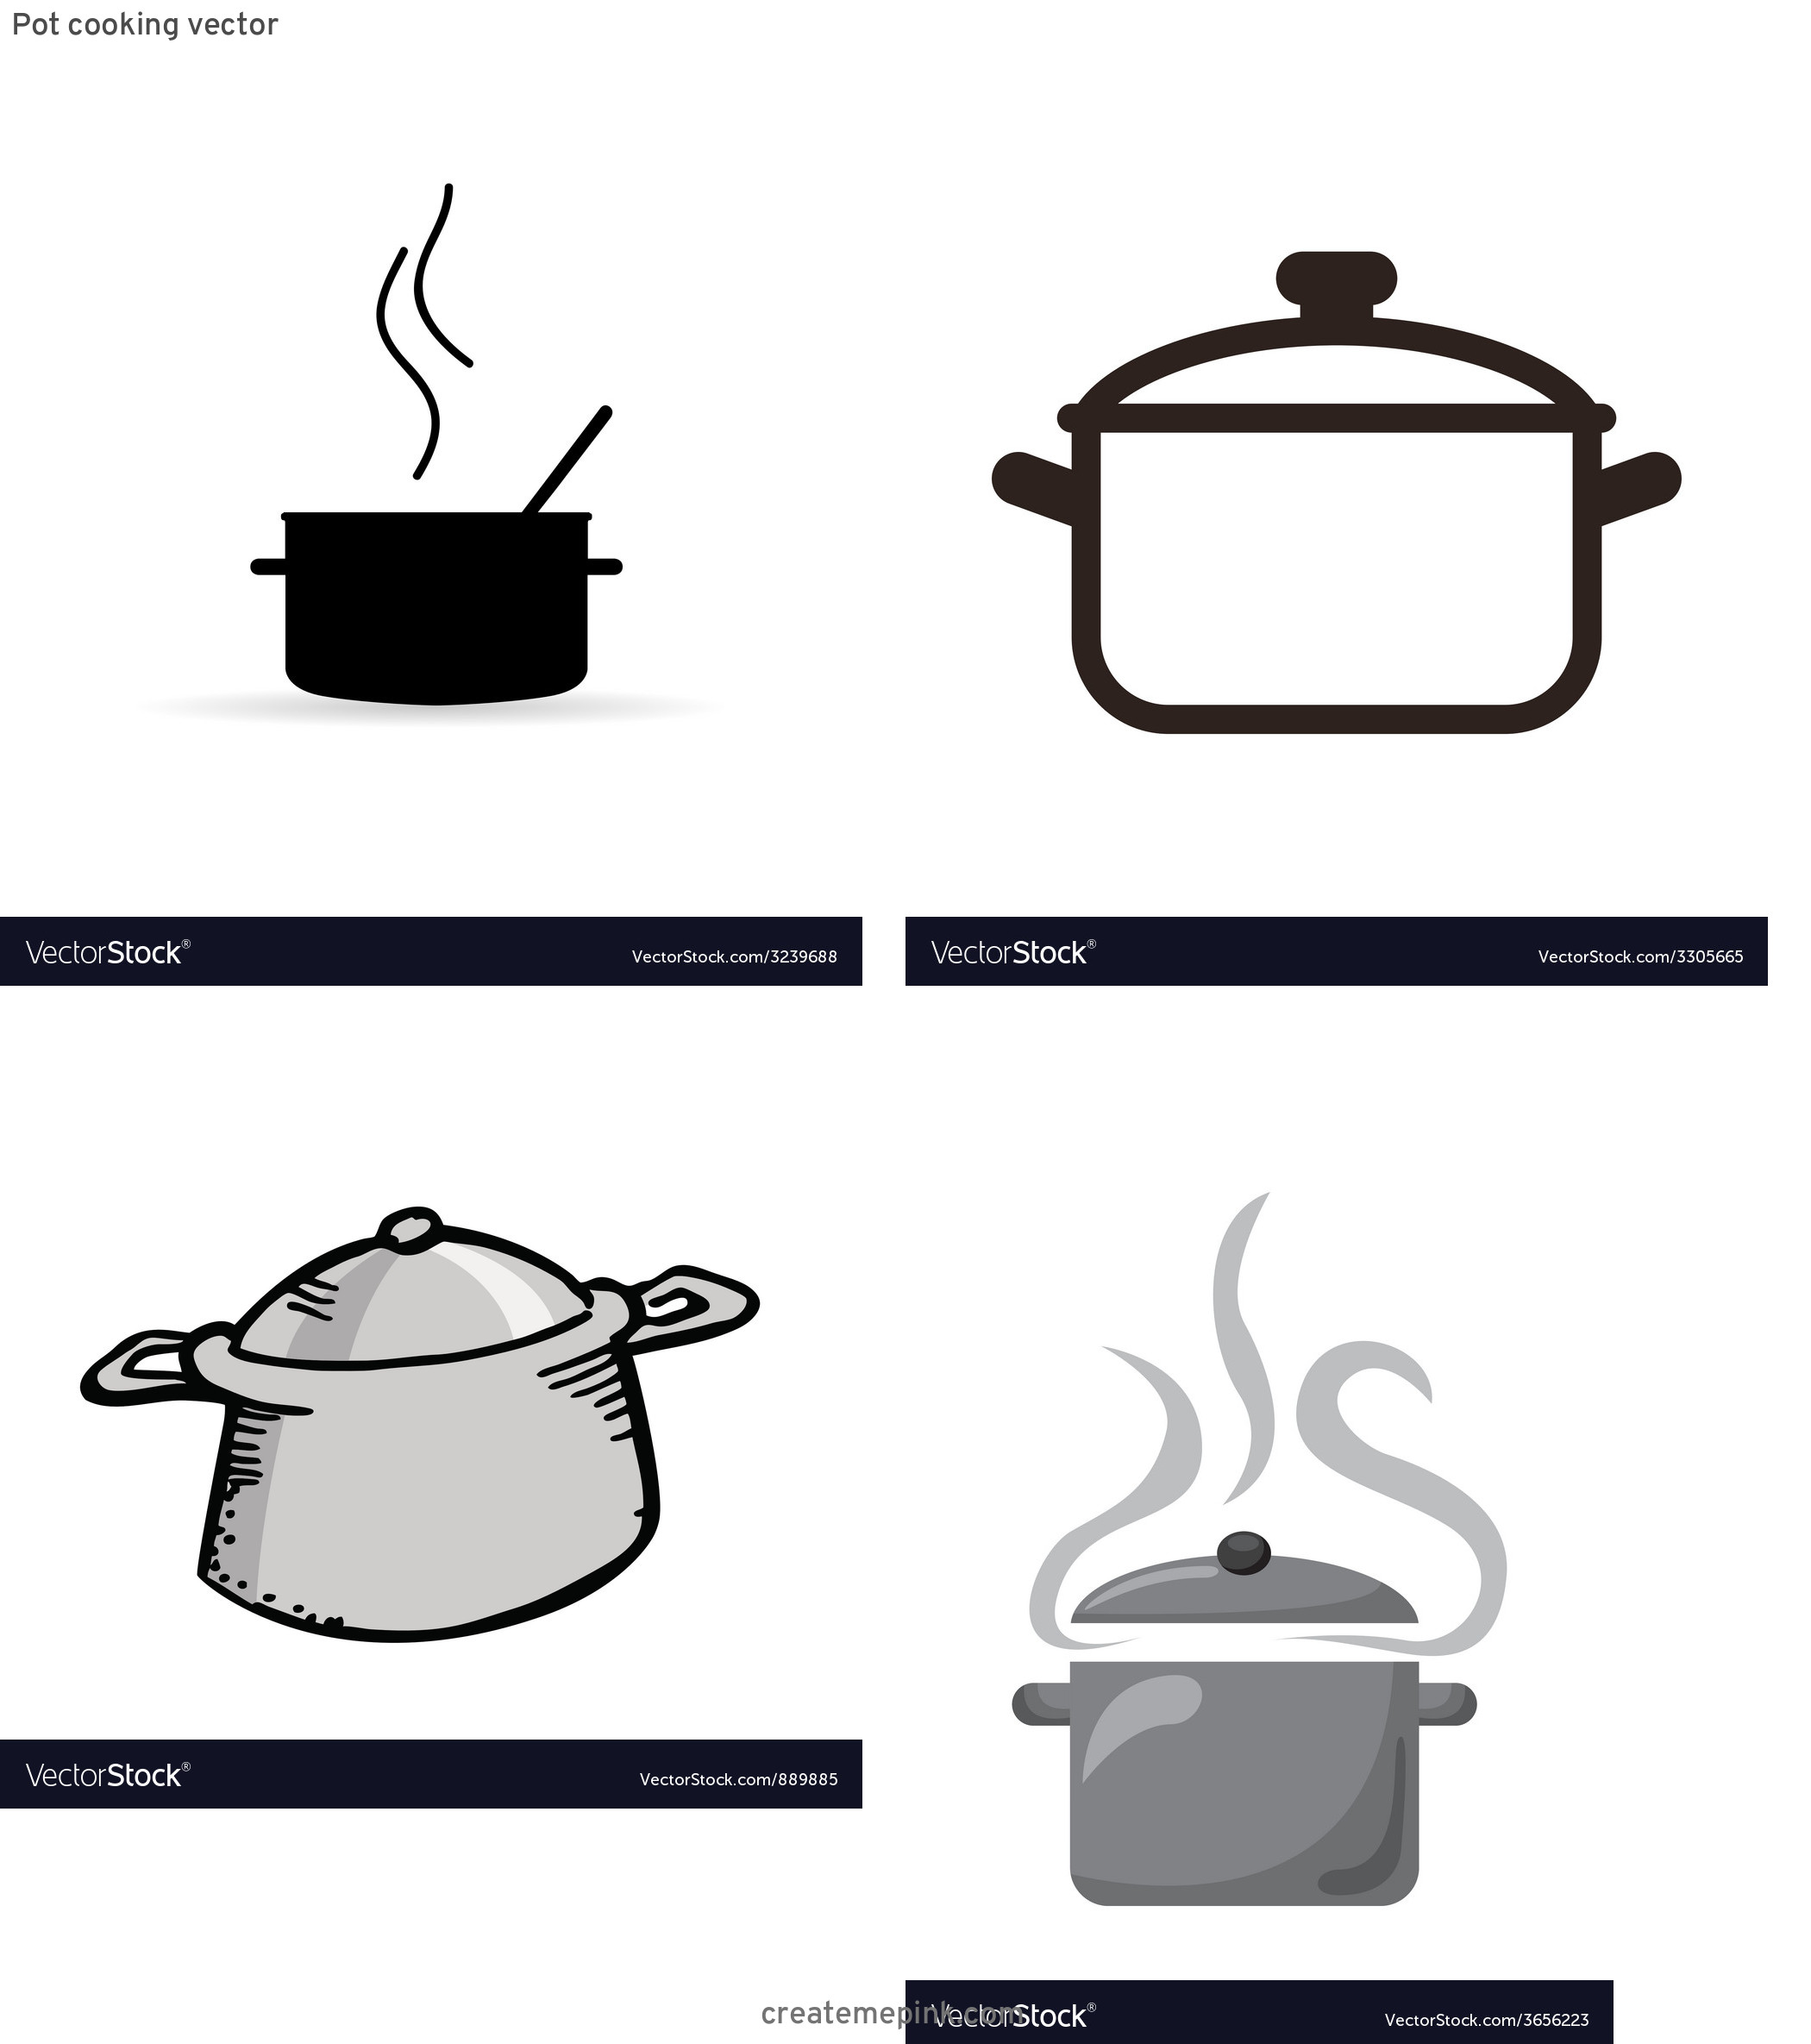 Cook Pot Vector: Pot Cooking Vector